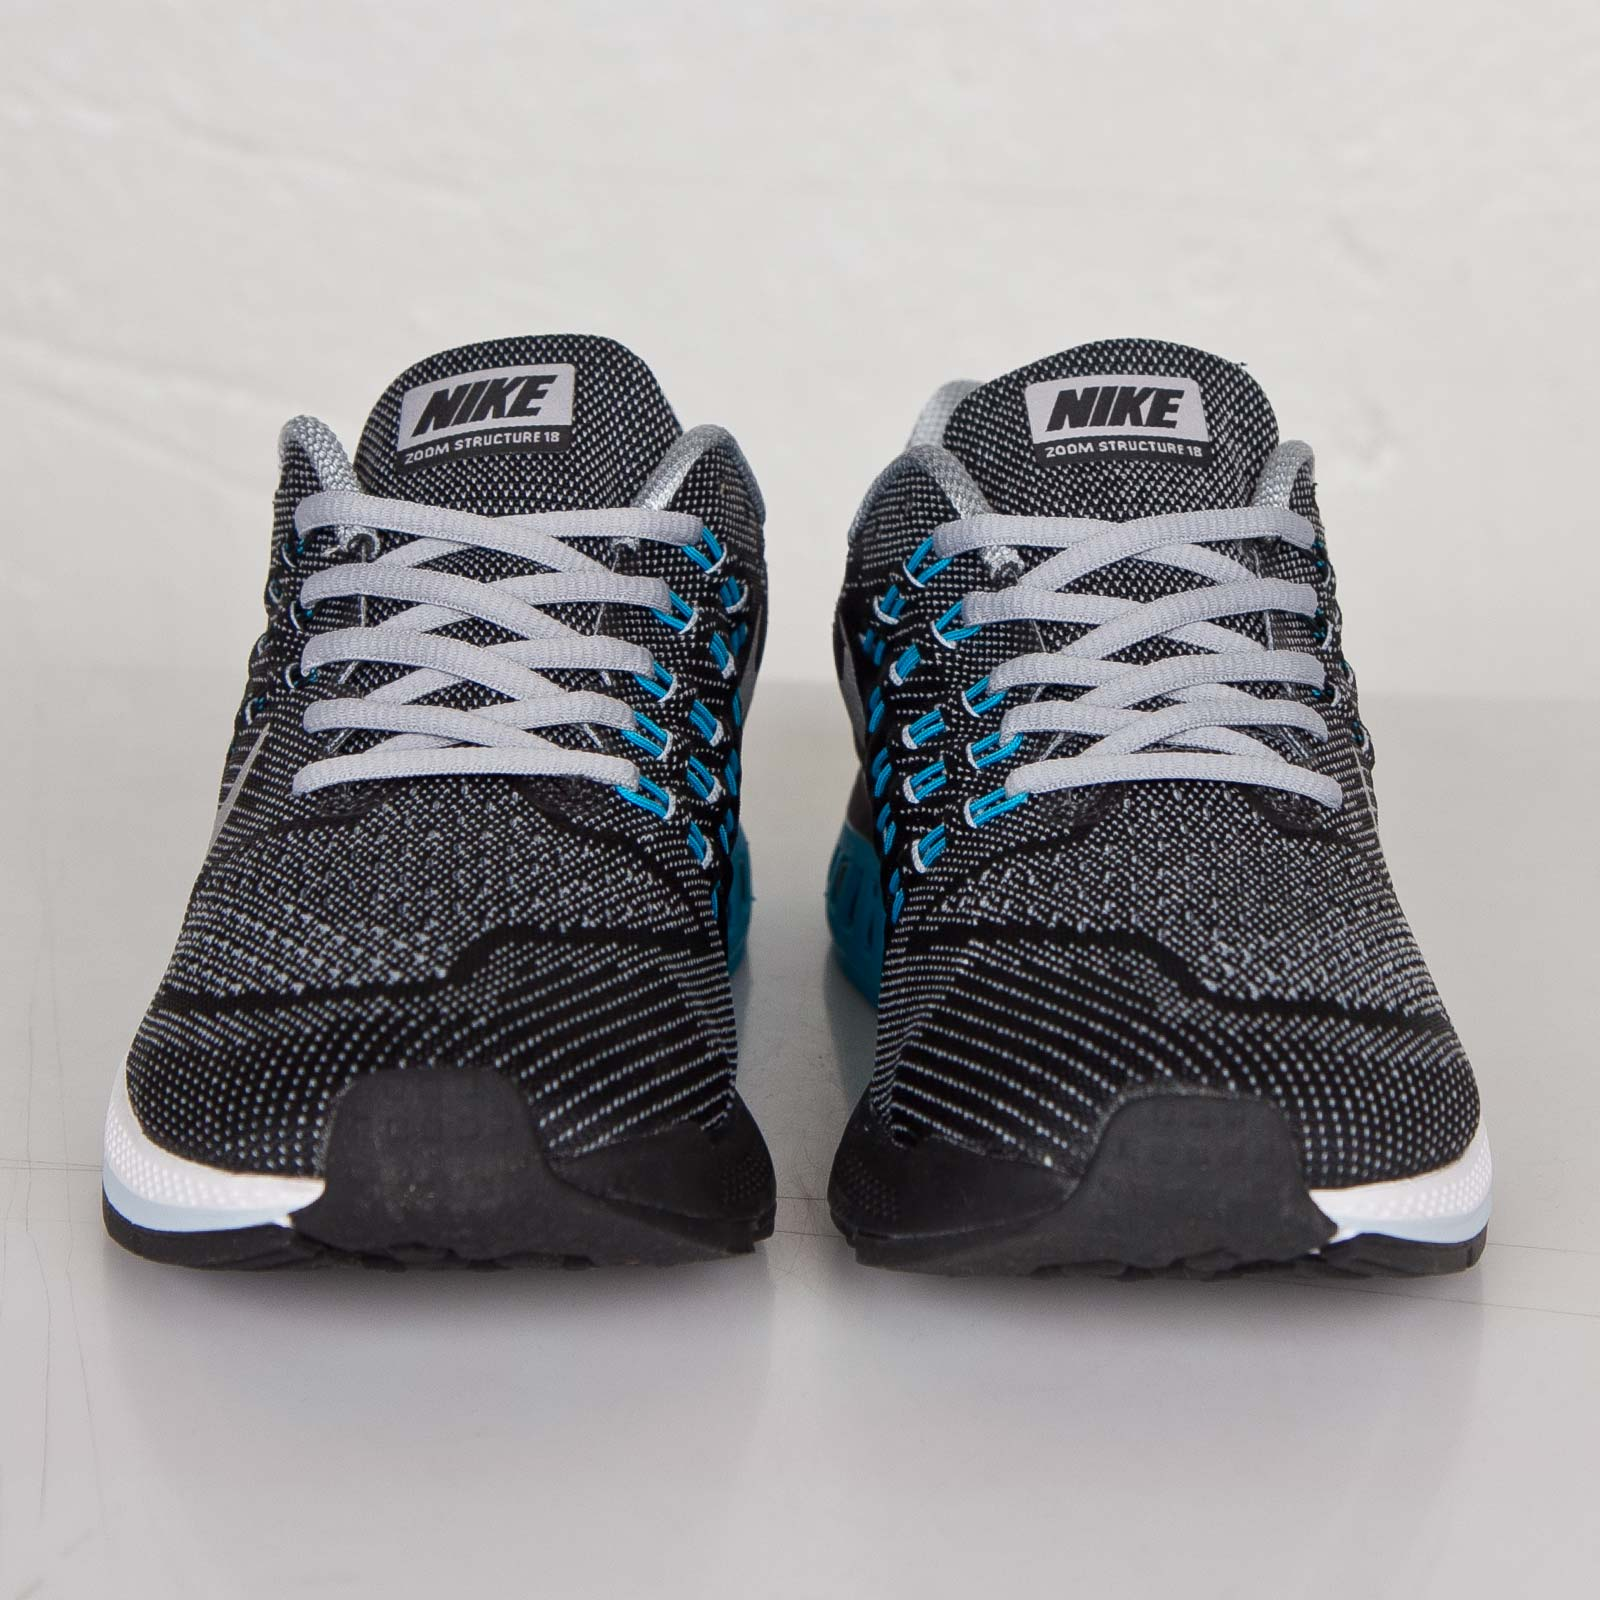 Nike Air Zoom Structure 18 - 683731-002 - Sneakersnstuff  5391e6c00